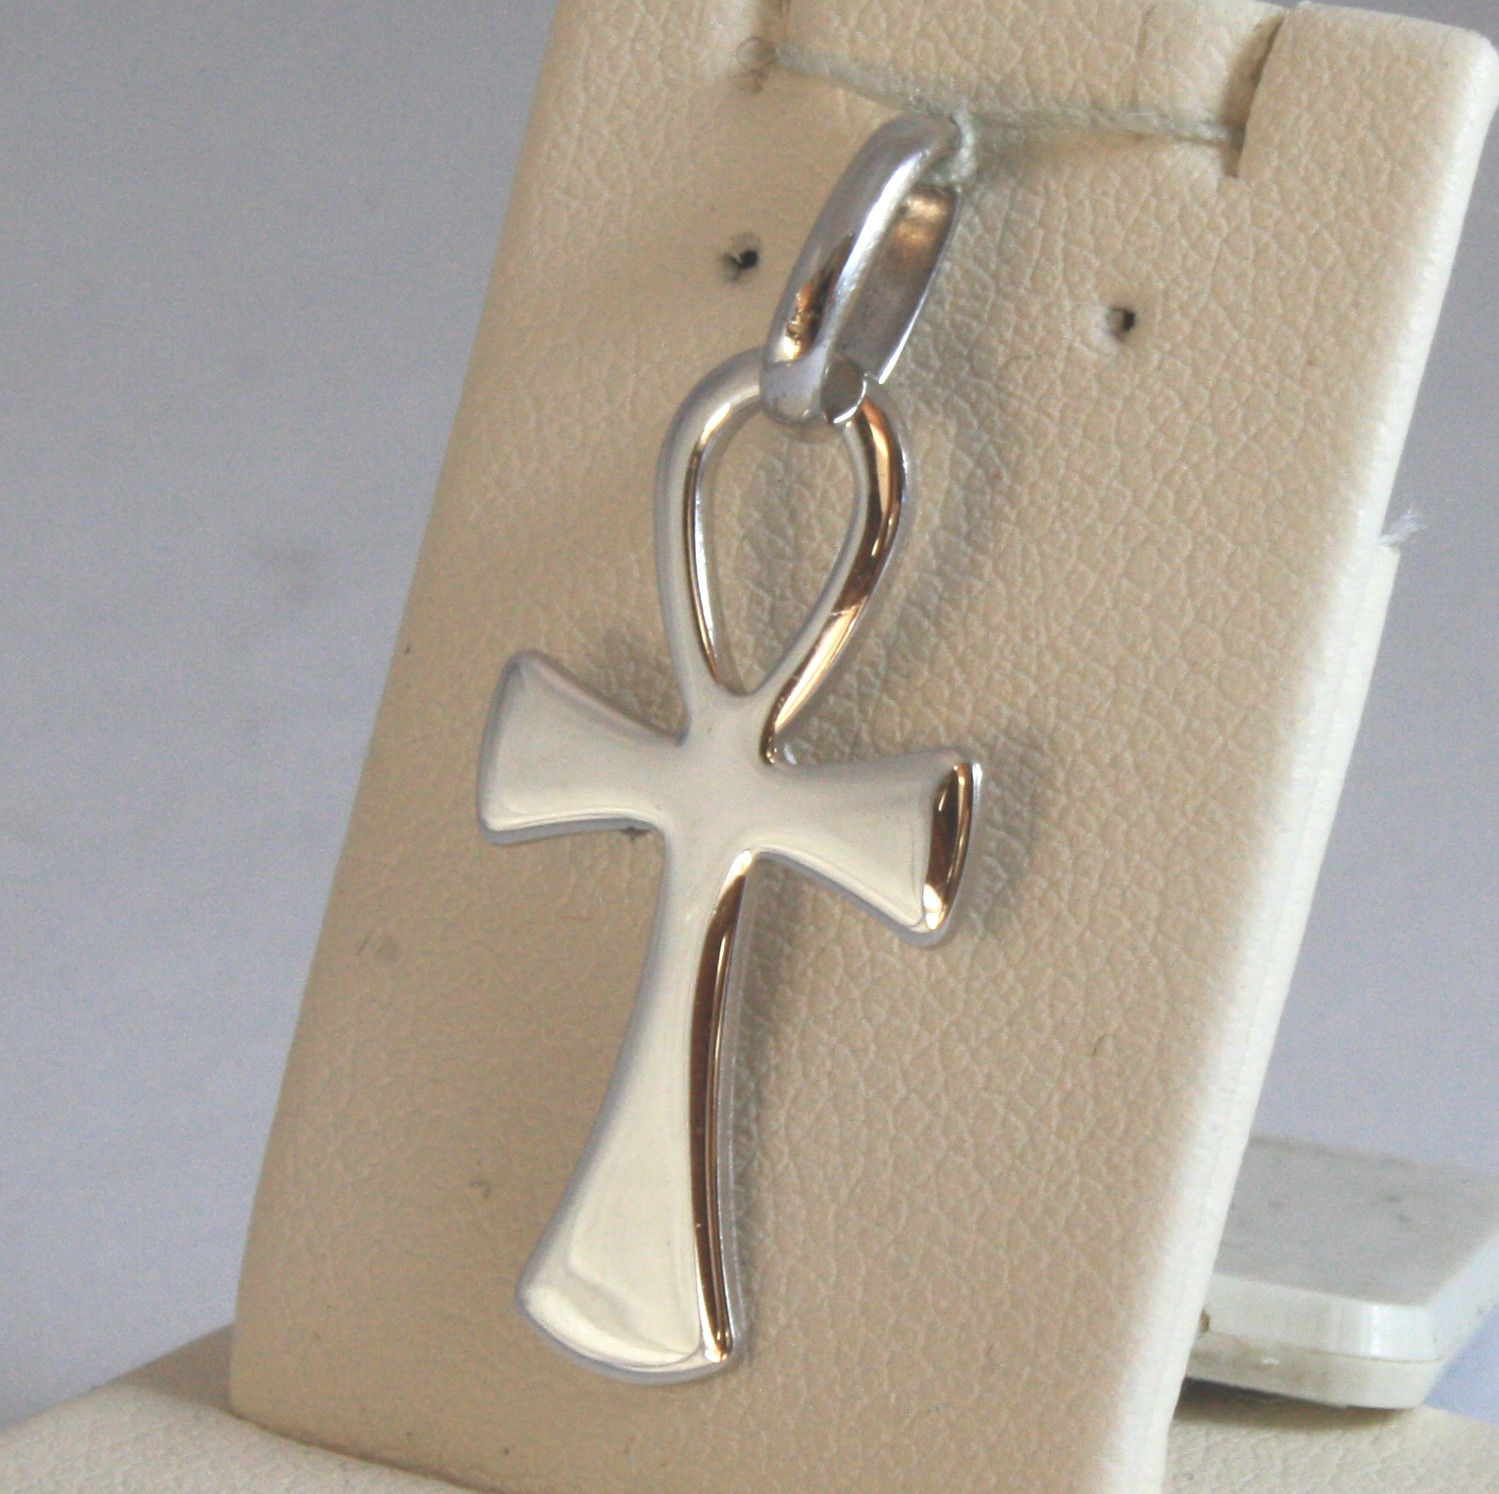 SOLID 18K WHITE GOLD, ANKH CROSS OF LIFE PENDANT, LENGTH 1,1 IN MADE IN ITALY